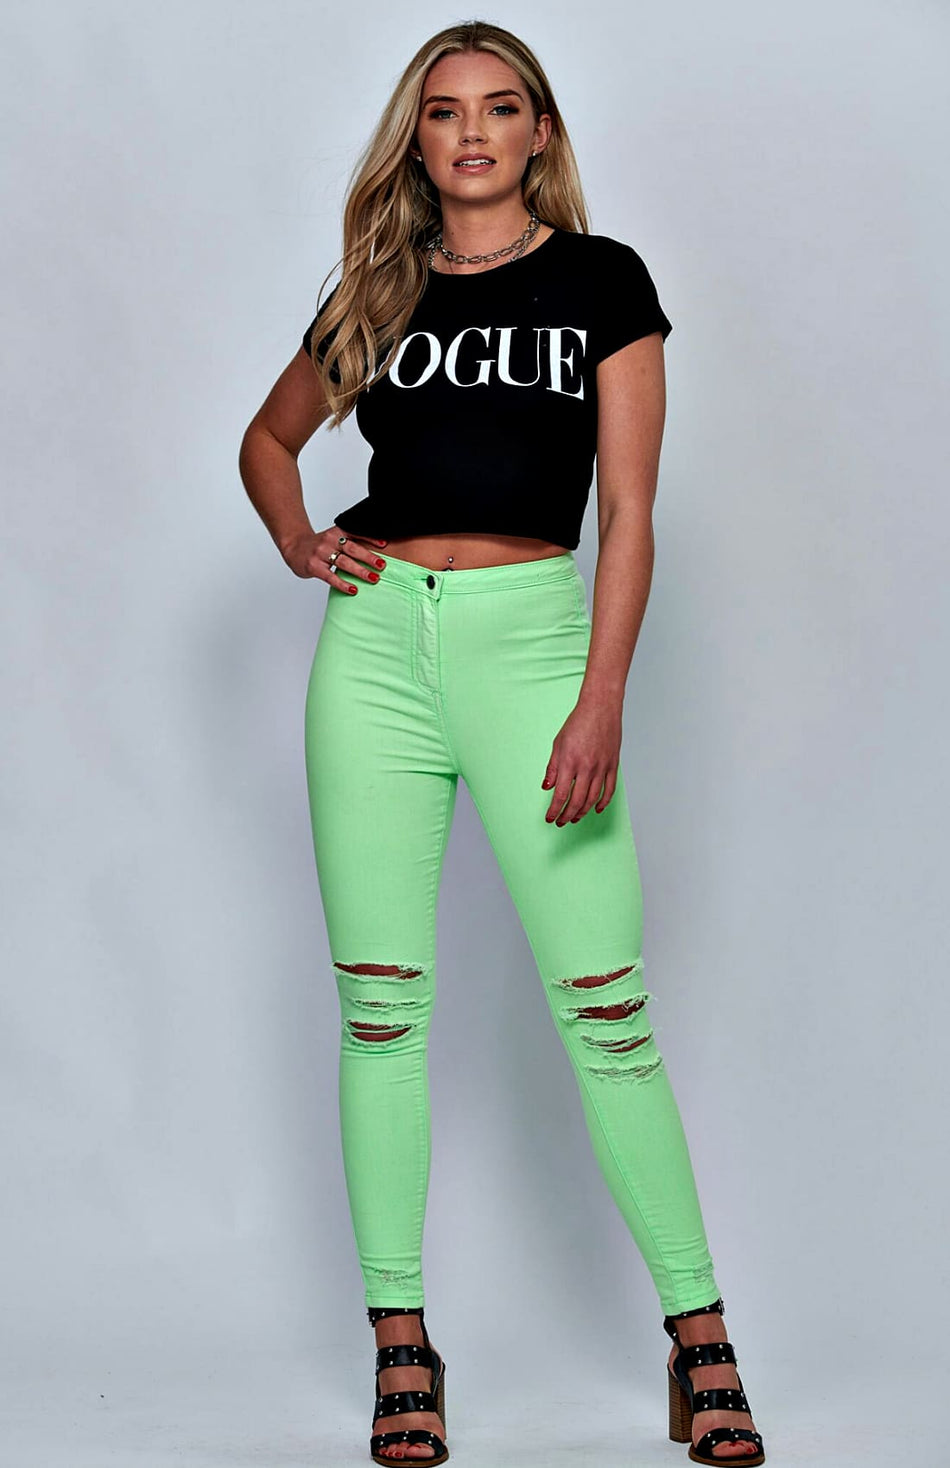 Zwart Vogue Slogan T-shirt